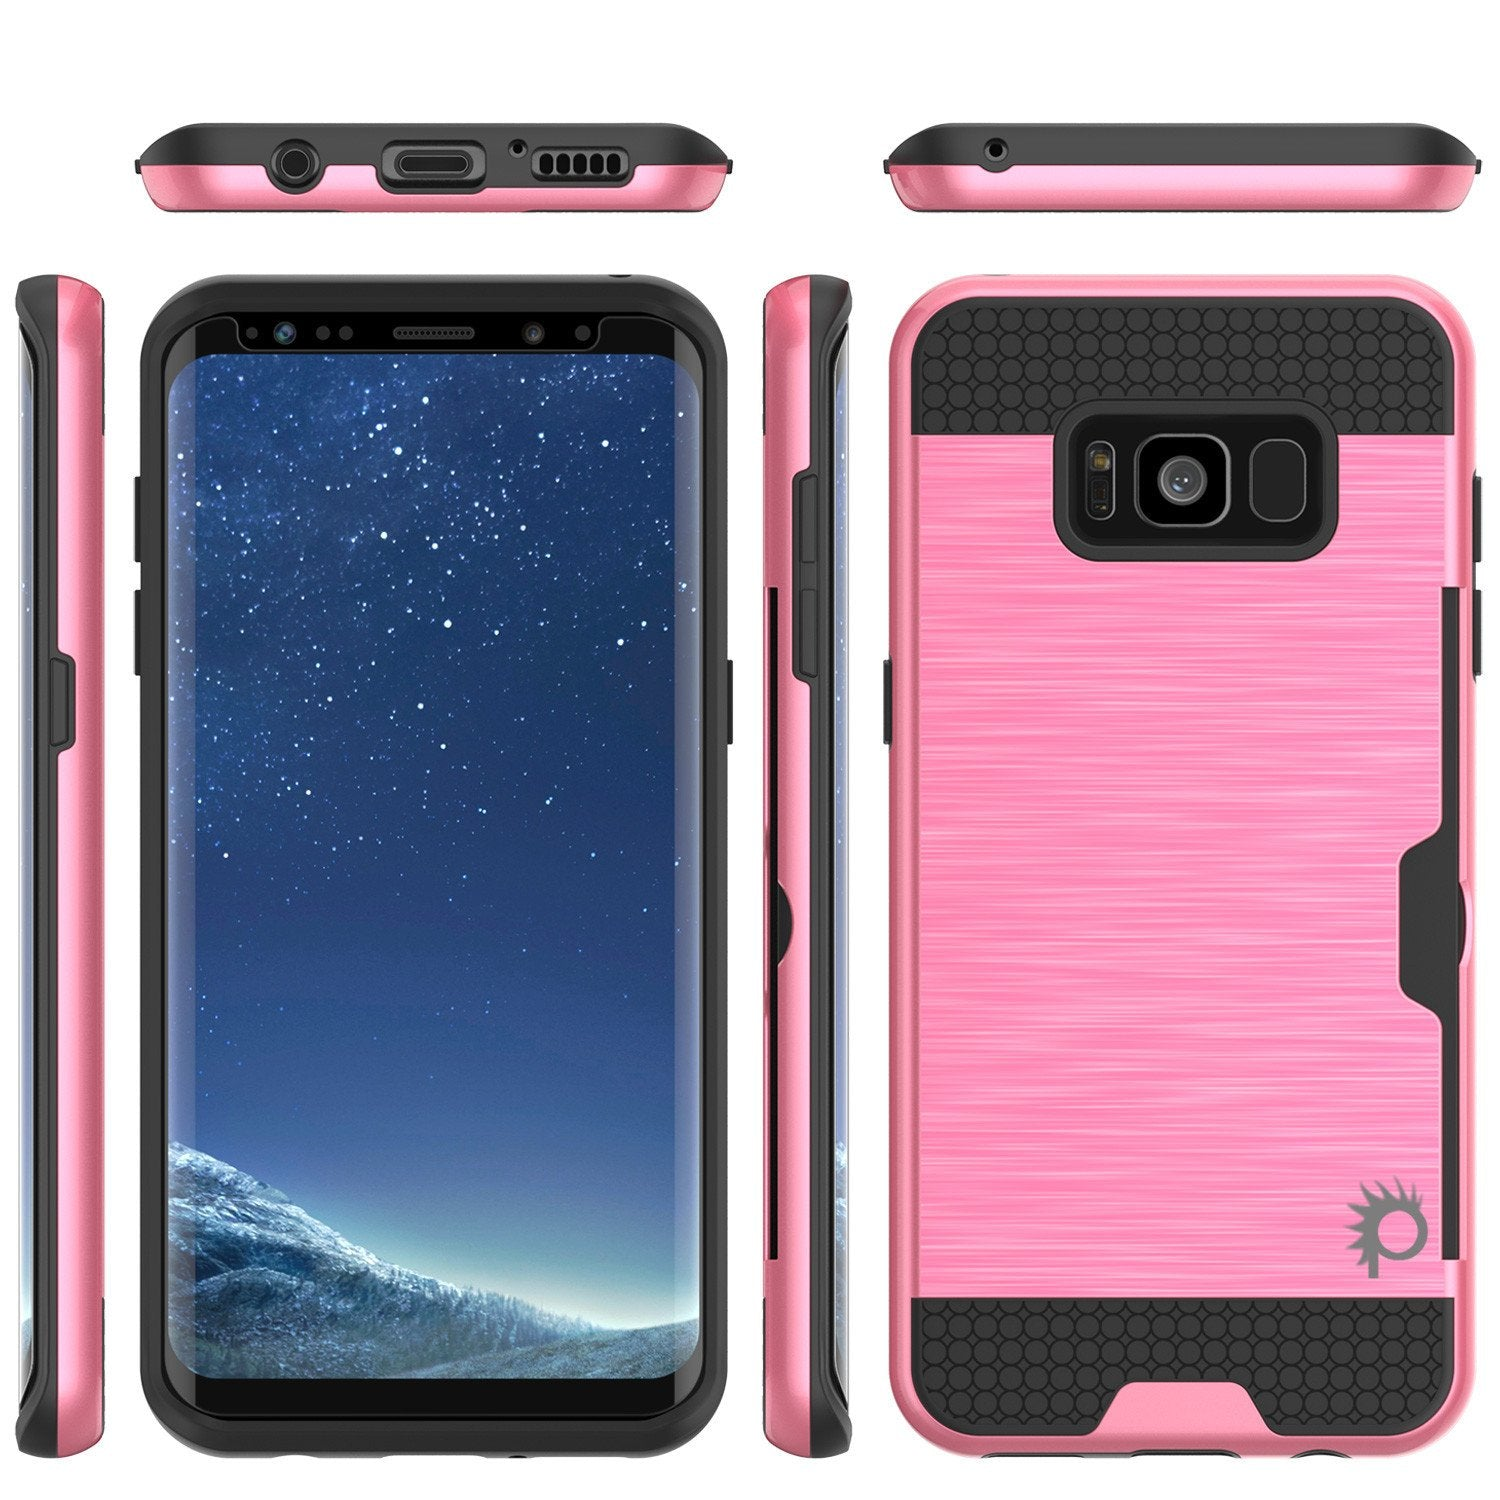 Galaxy S8 Plus Dual-Layer Anti-Shock Screen Protector Case [Pink]